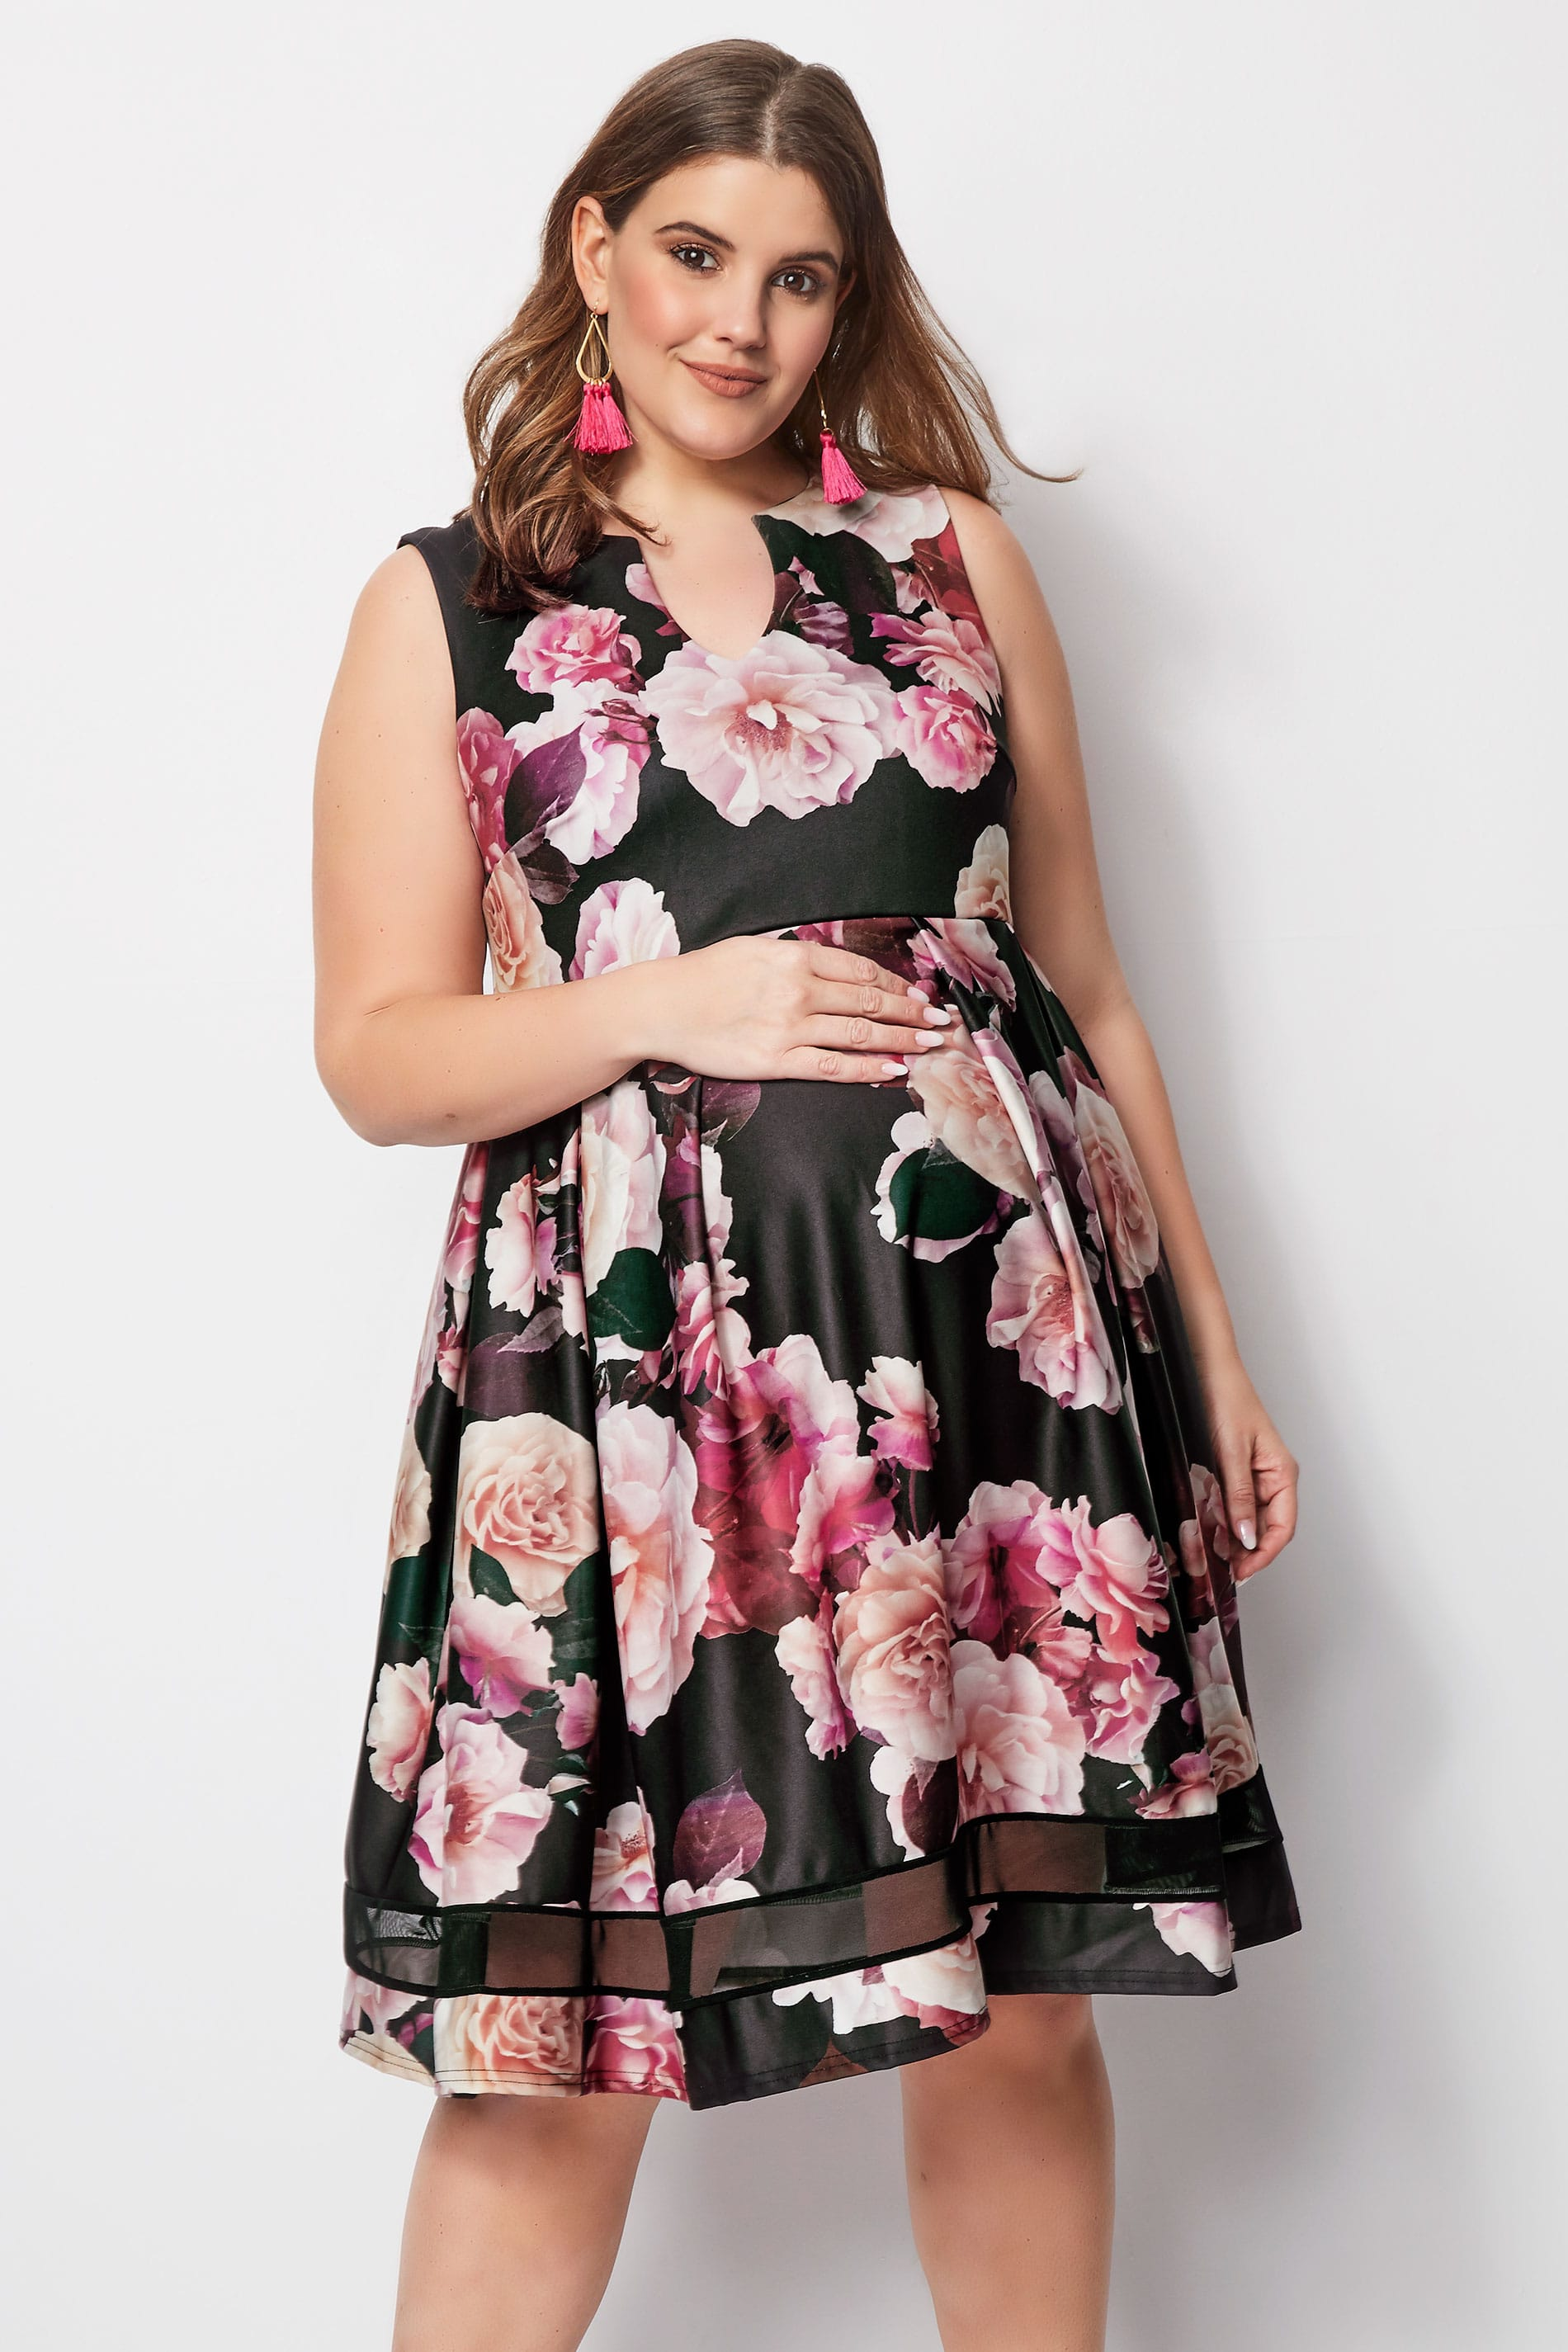 BUMP IT UP MATERNITY Pink Floral Skater Dress